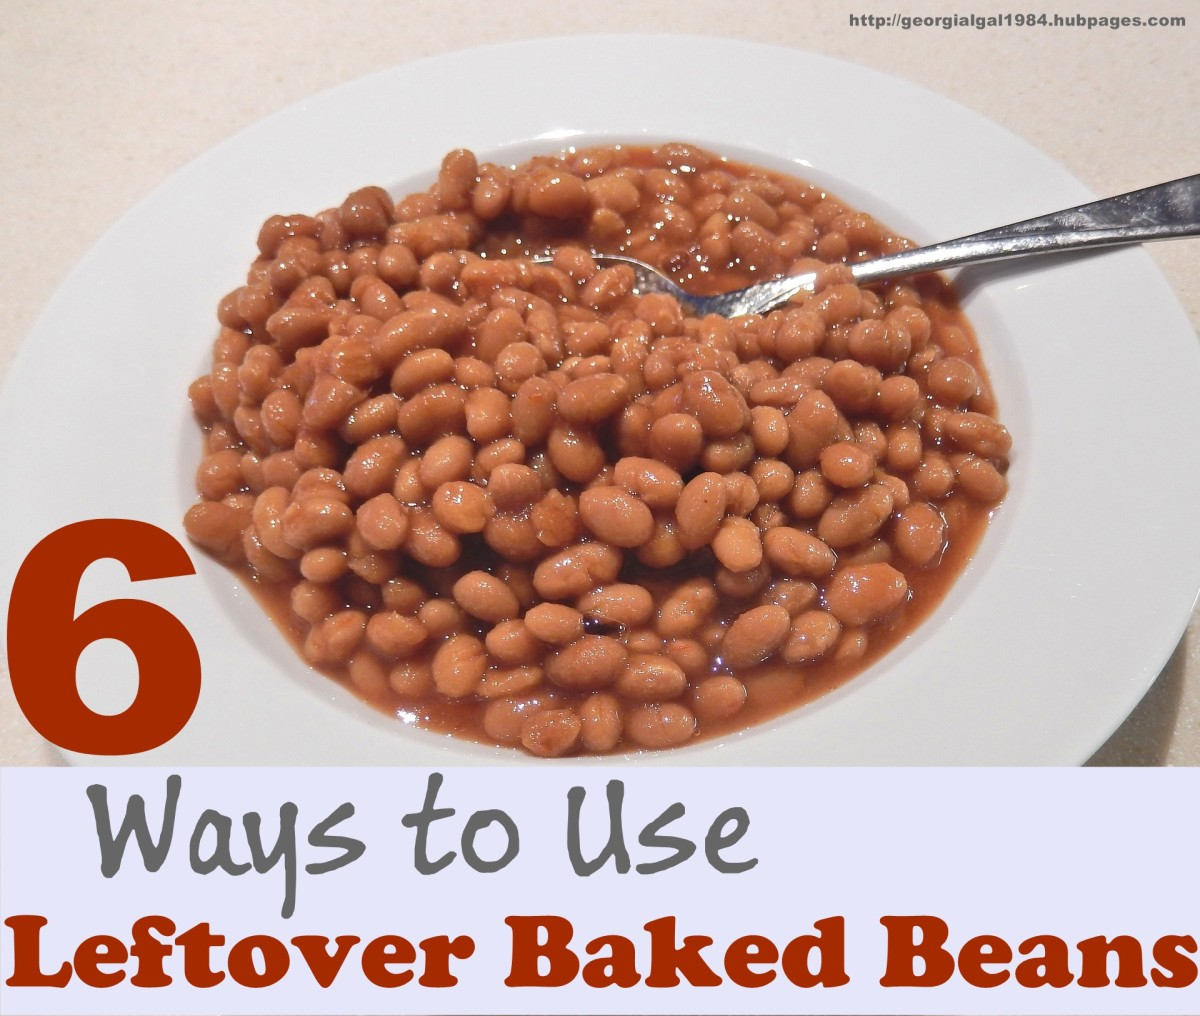 These easy and delicious tips and recipes will help you create the best meals from your leftover baked beans.